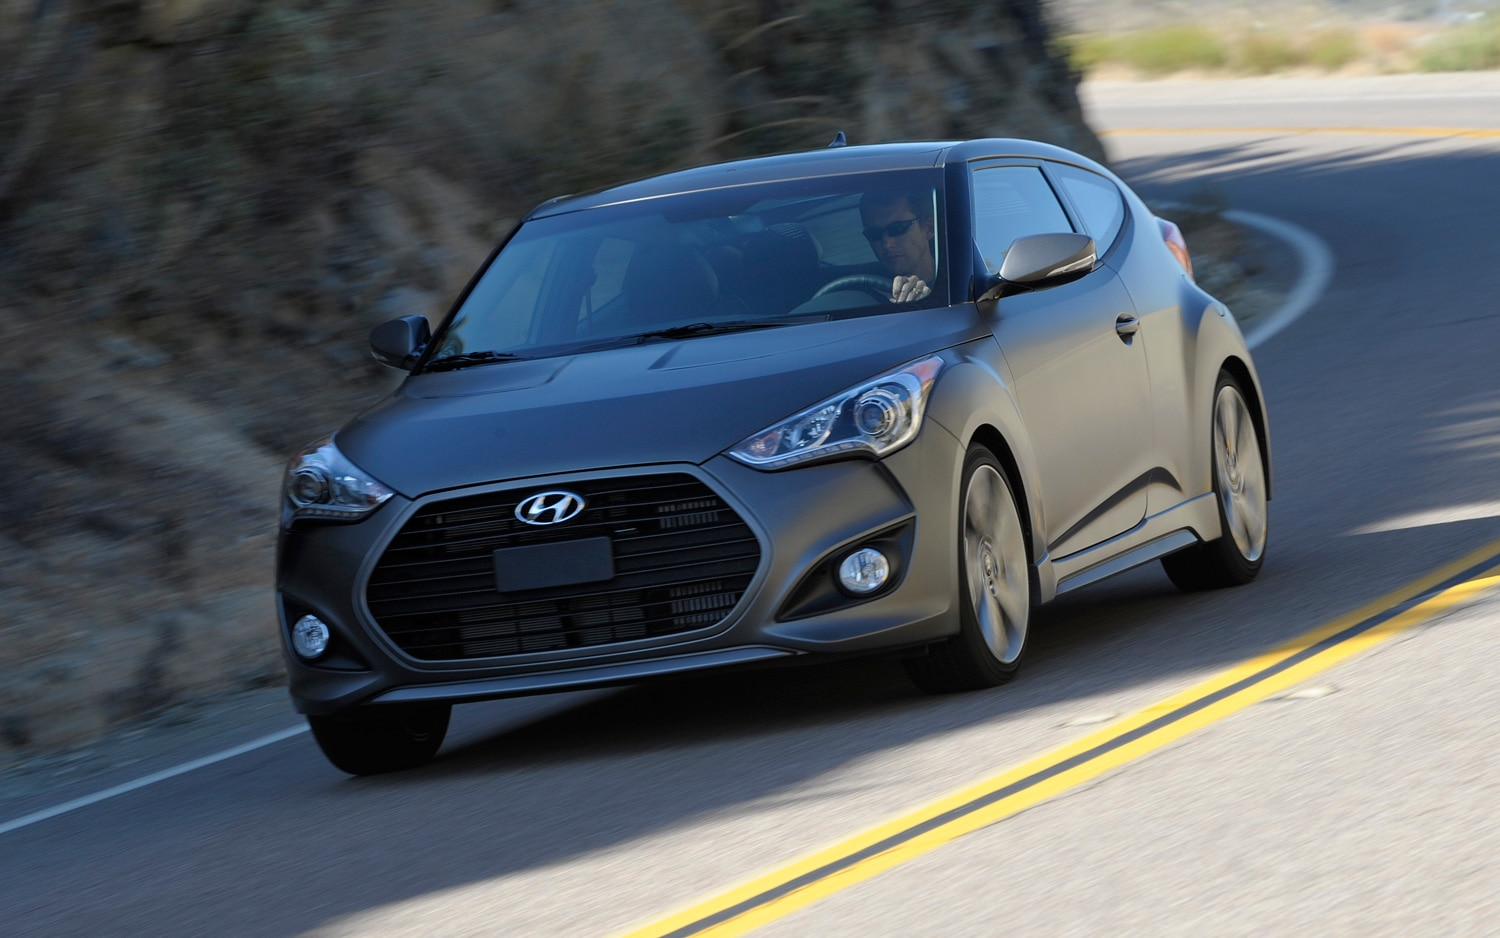 2013 Hyundai Veloster Turbo Front Three Quarter Motion1